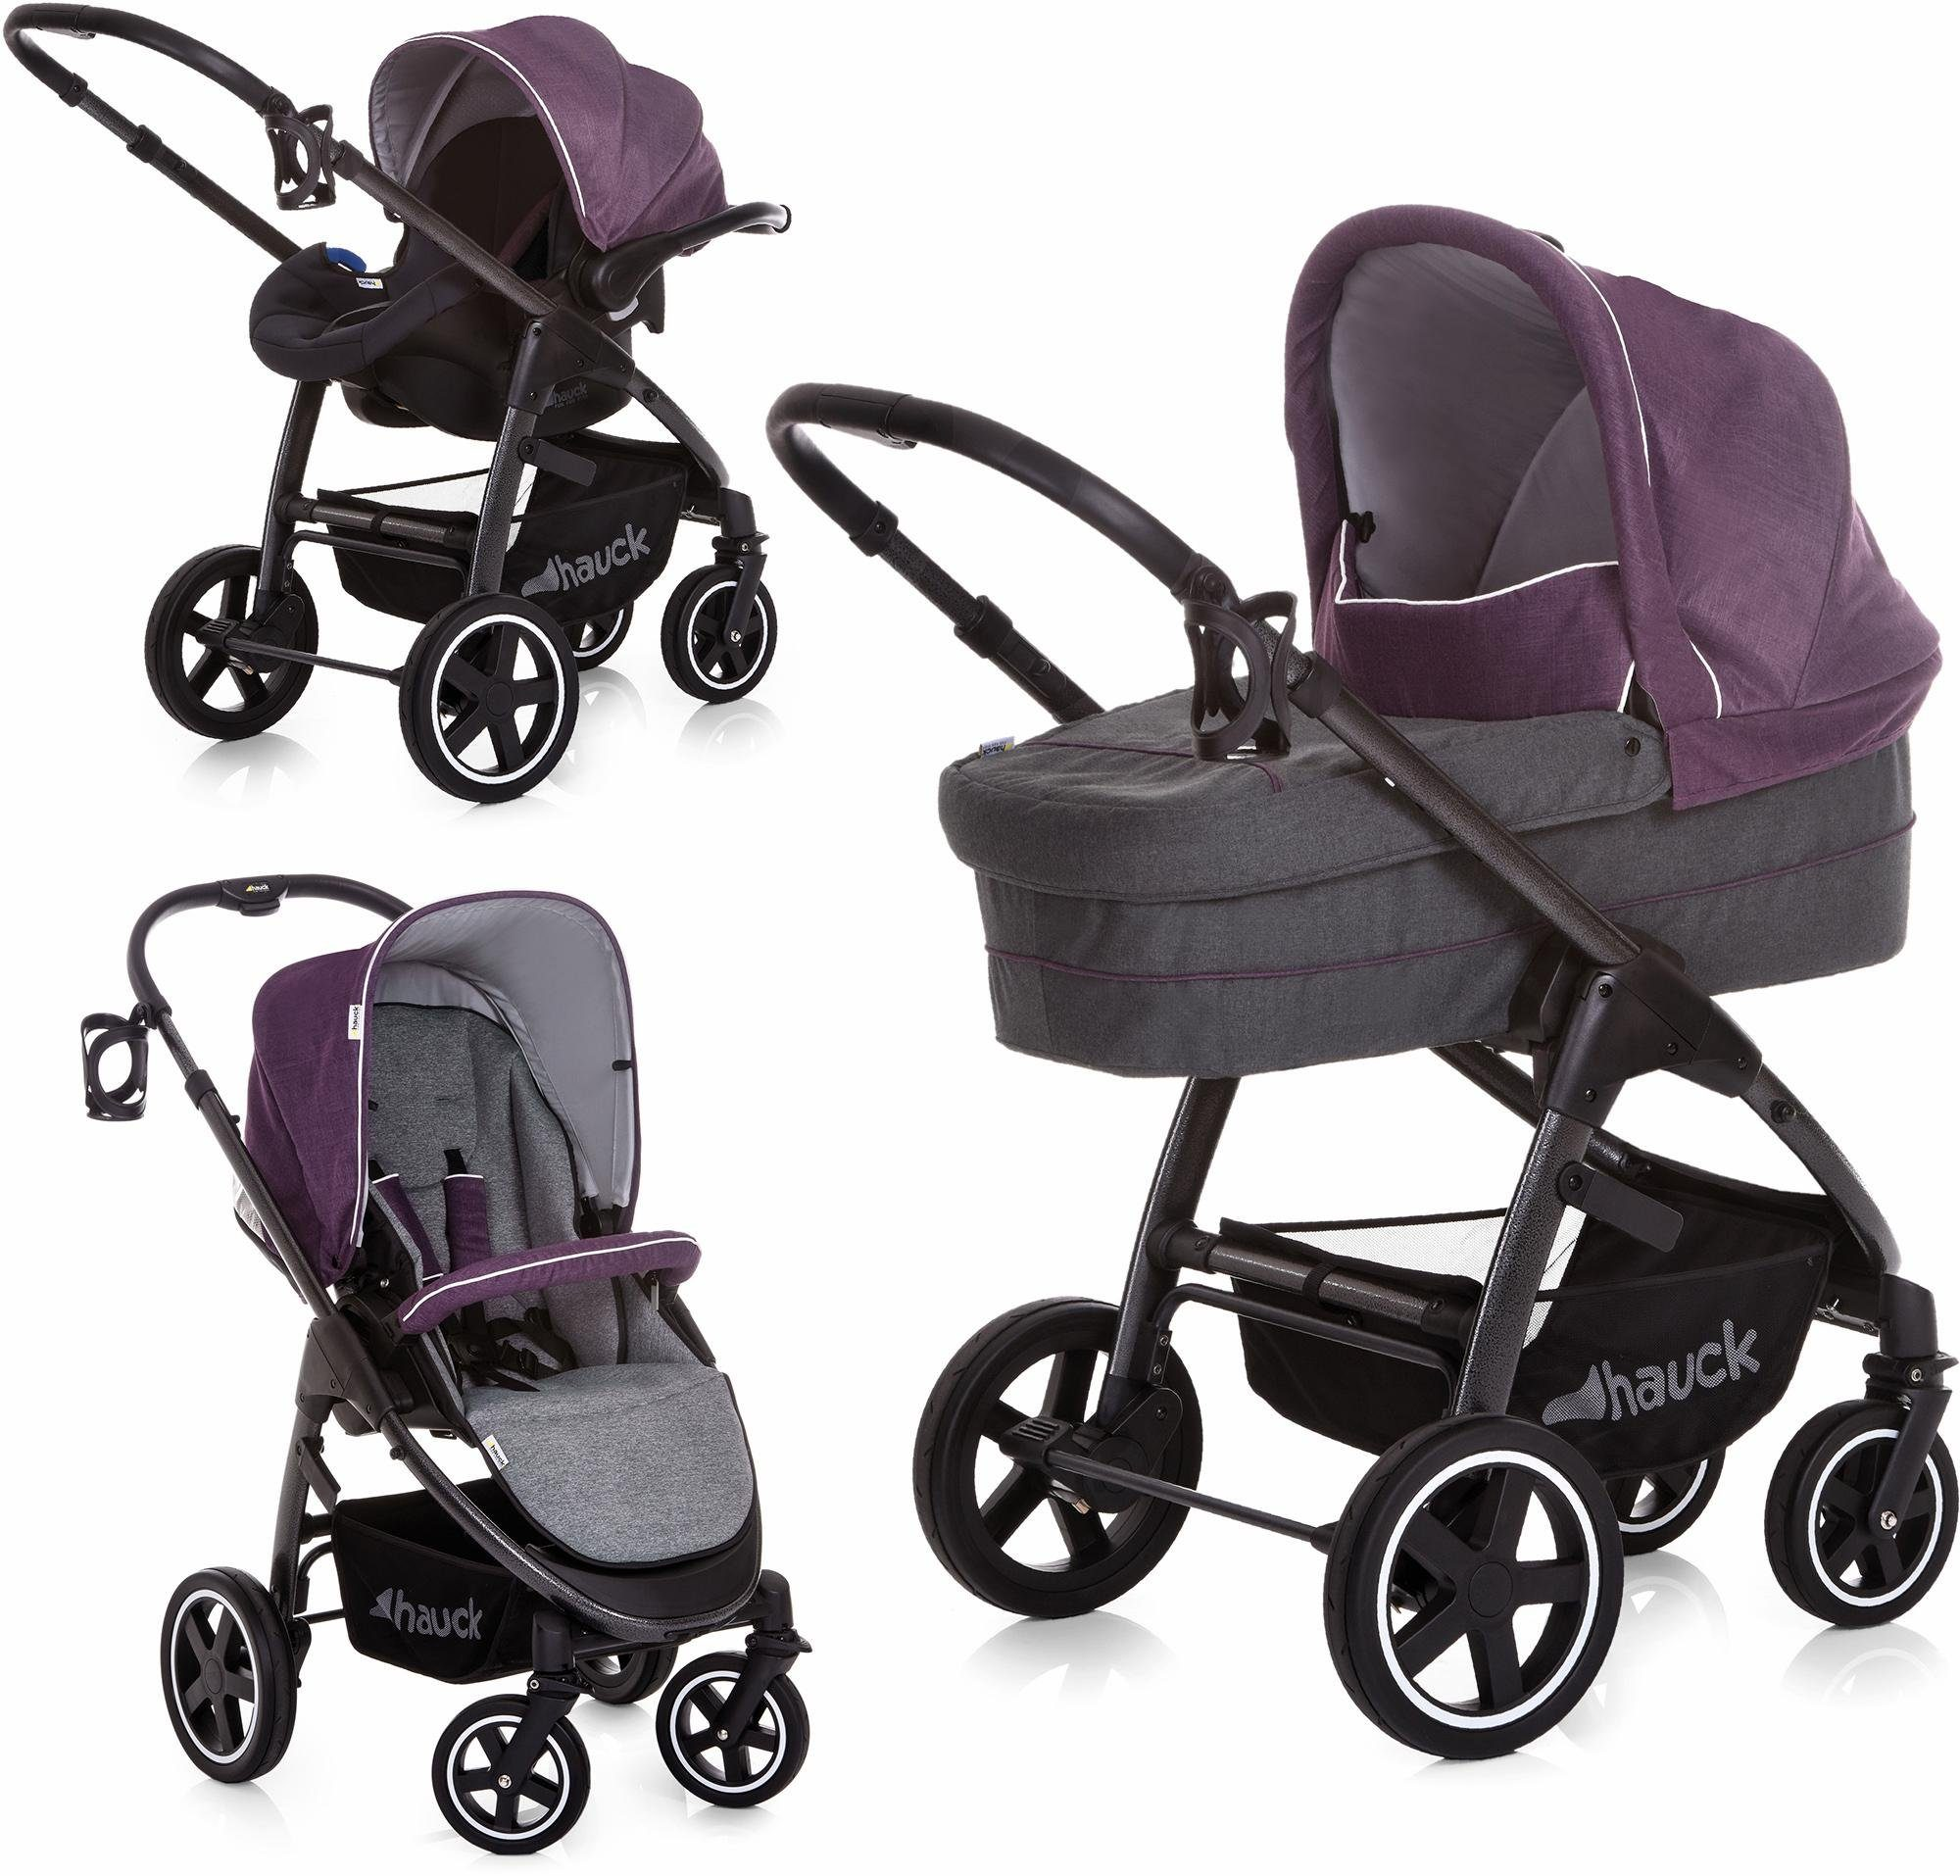 hauck FUN FOR KIDS Set: Kombi-Kinderwagen inkl. Babyschale, »Soul Plus Trio Set Berry«